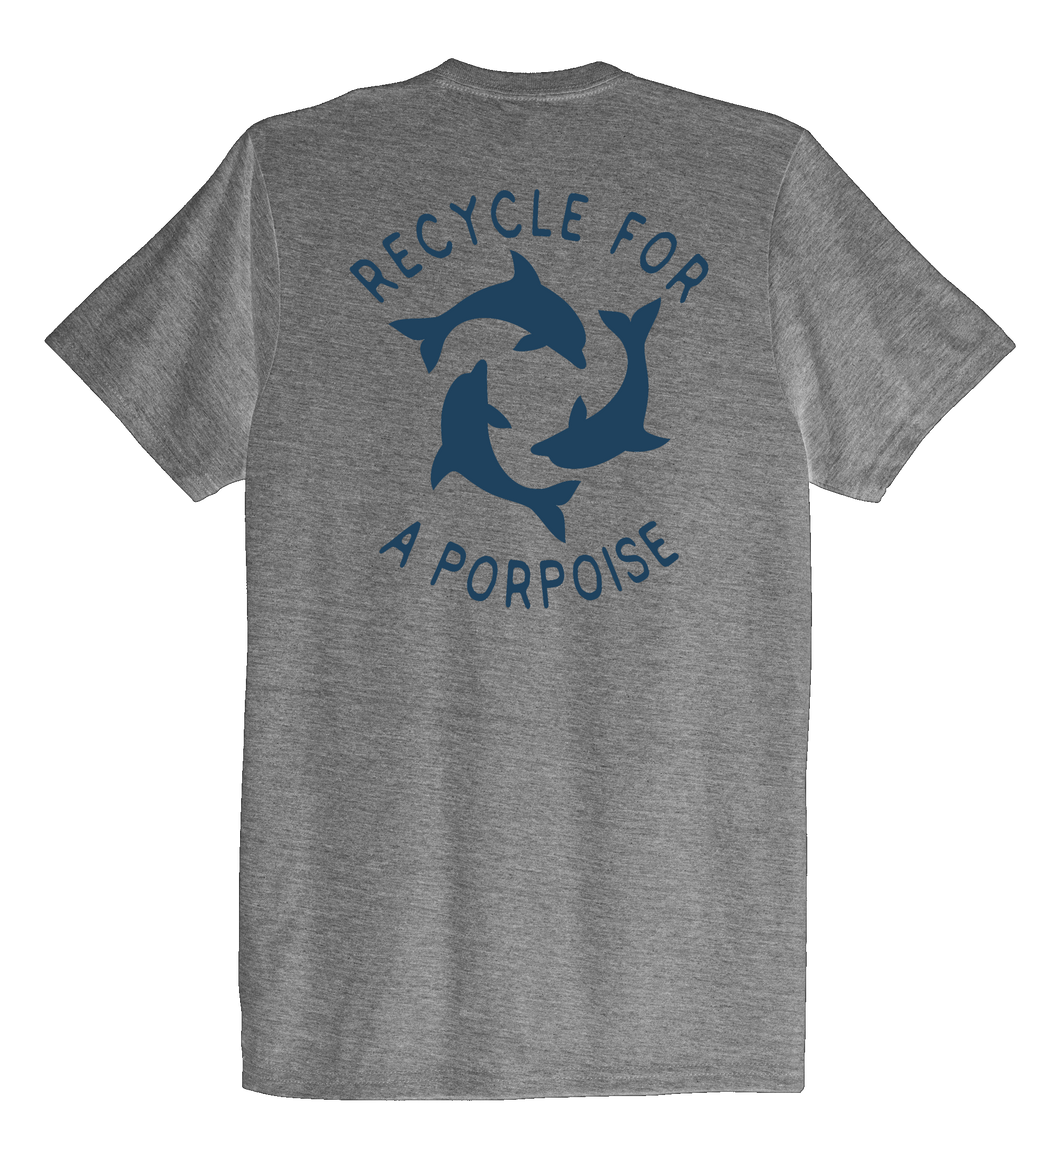 StepChange, Porpoise, Unisex Crew Neck T-shirt in Oyster Grey